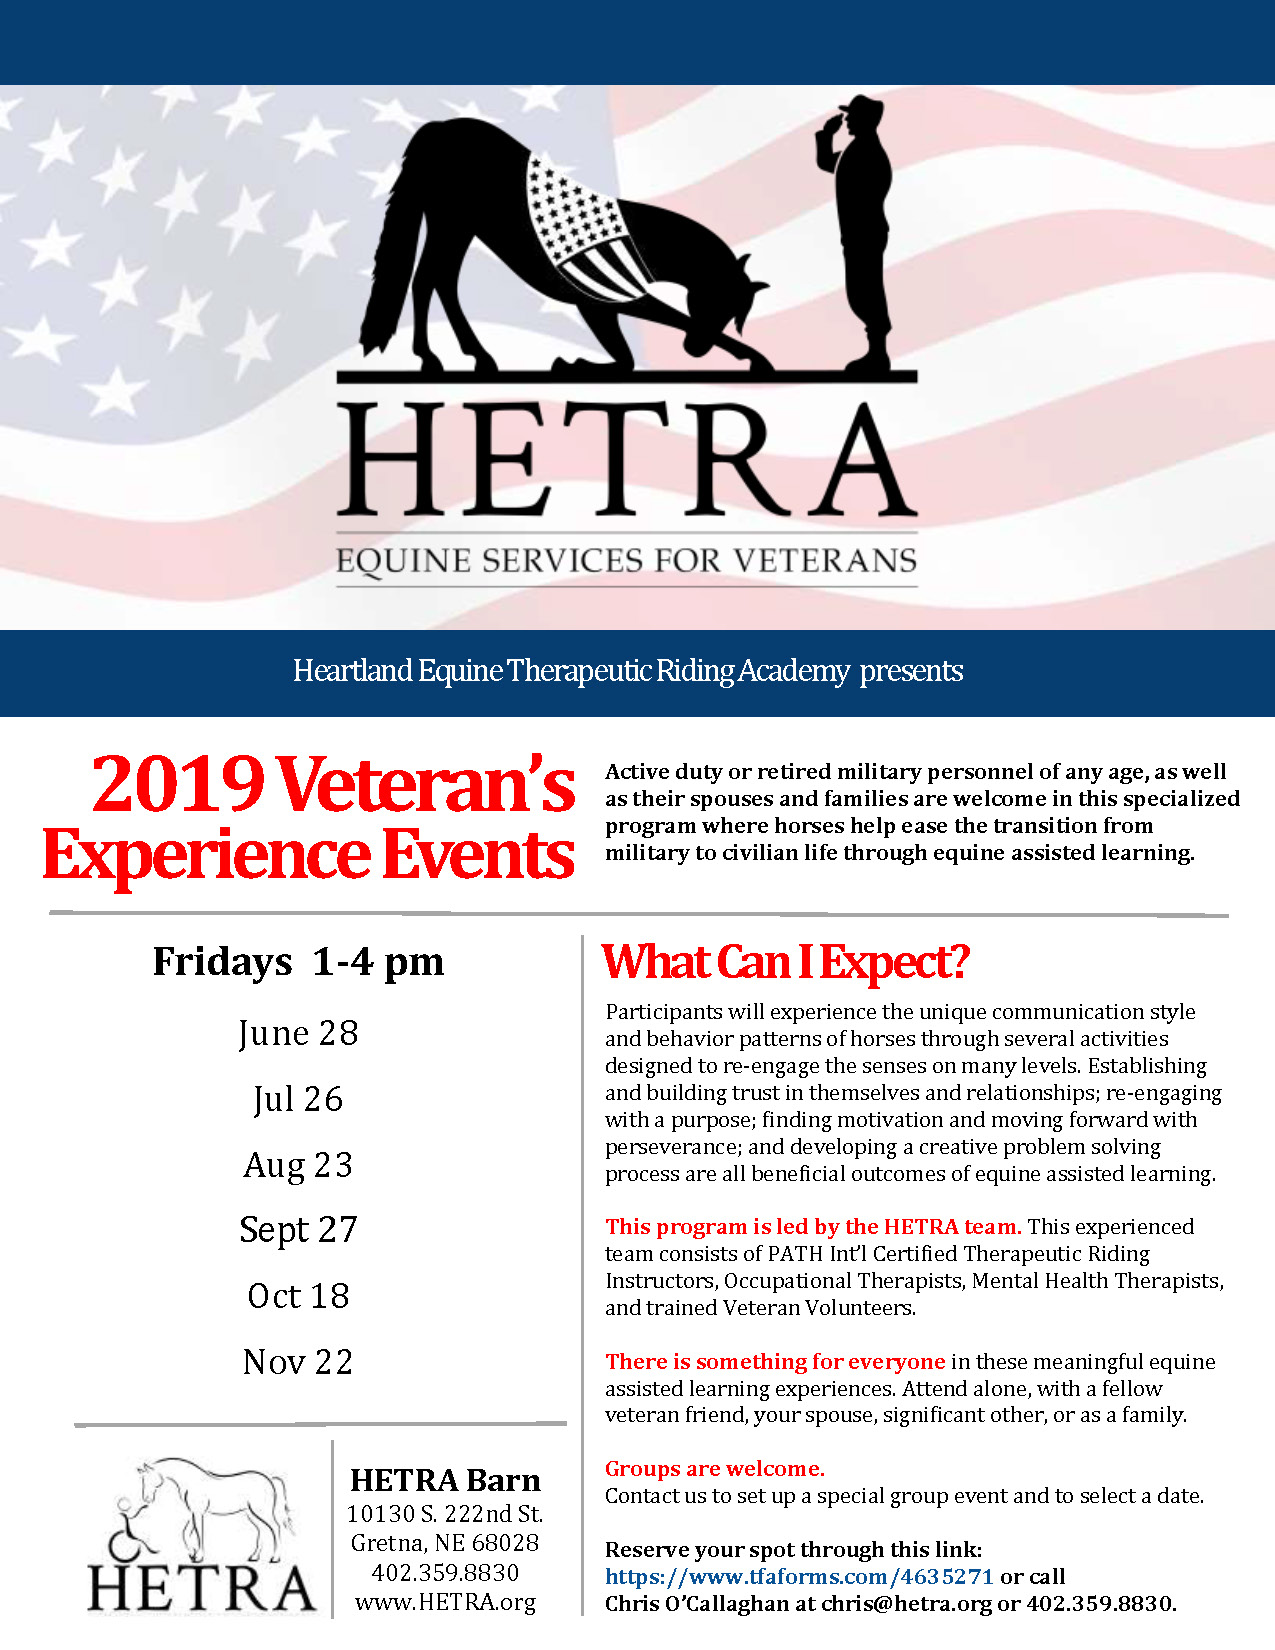 HETRA Equine Services For Veterans flyer